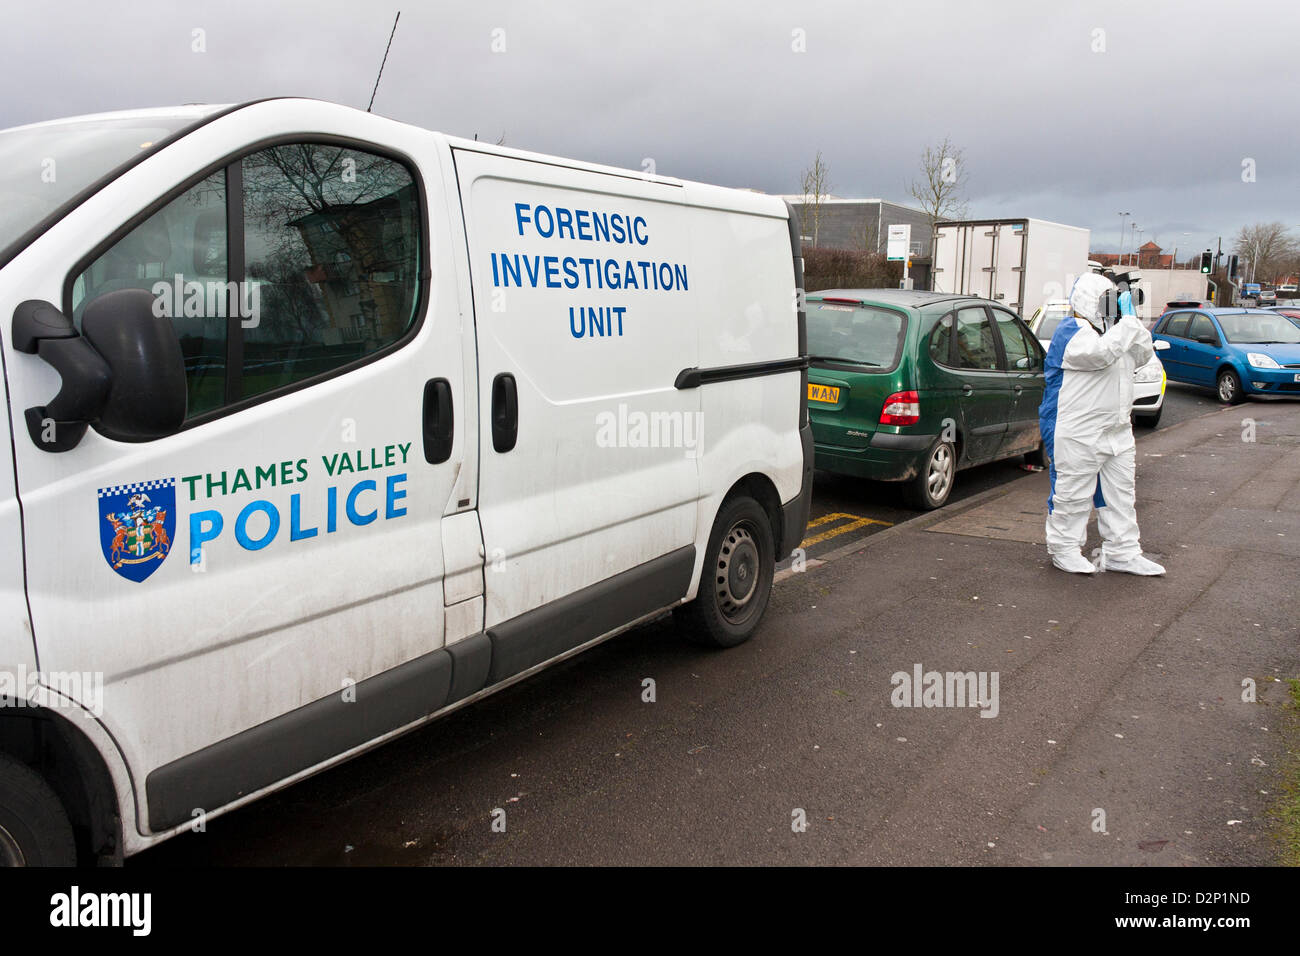 A forensic investigator takes photos at the scene of a crime. - Stock Image